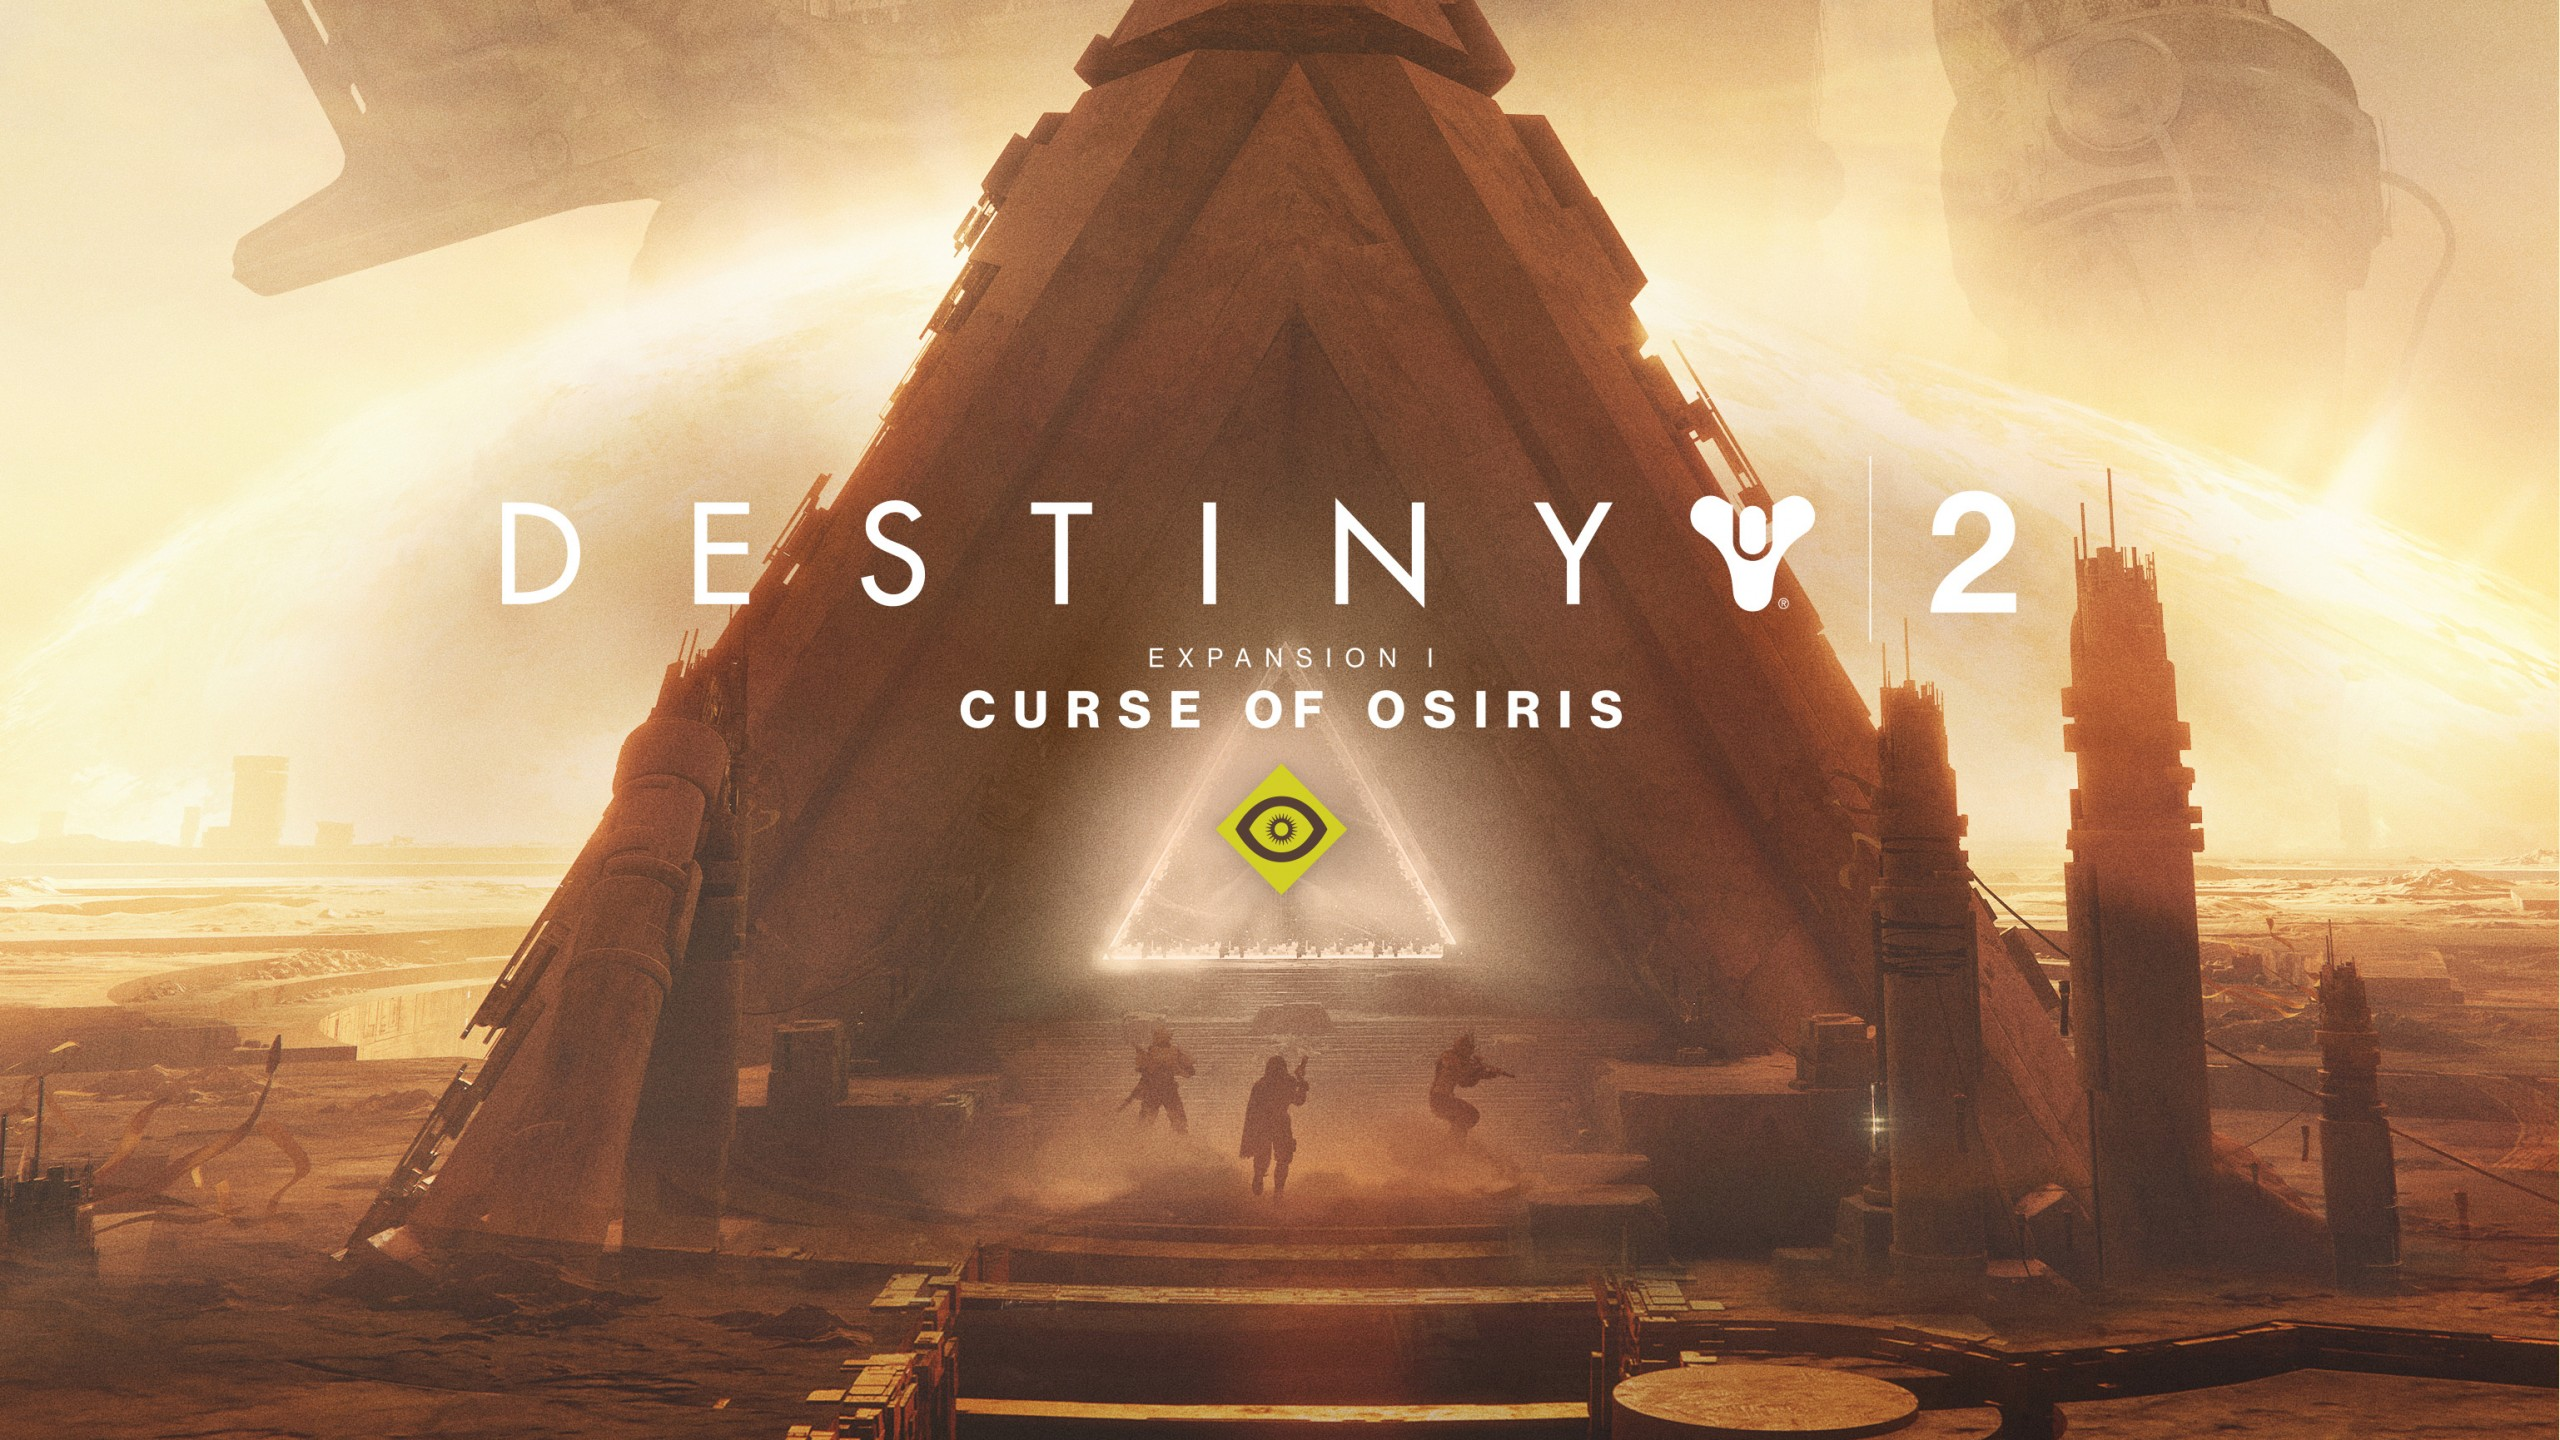 Cute Apple Logo Wallpaper Destiny 2 Dlc Curse Of Osiris Wallpapers Hd Wallpapers